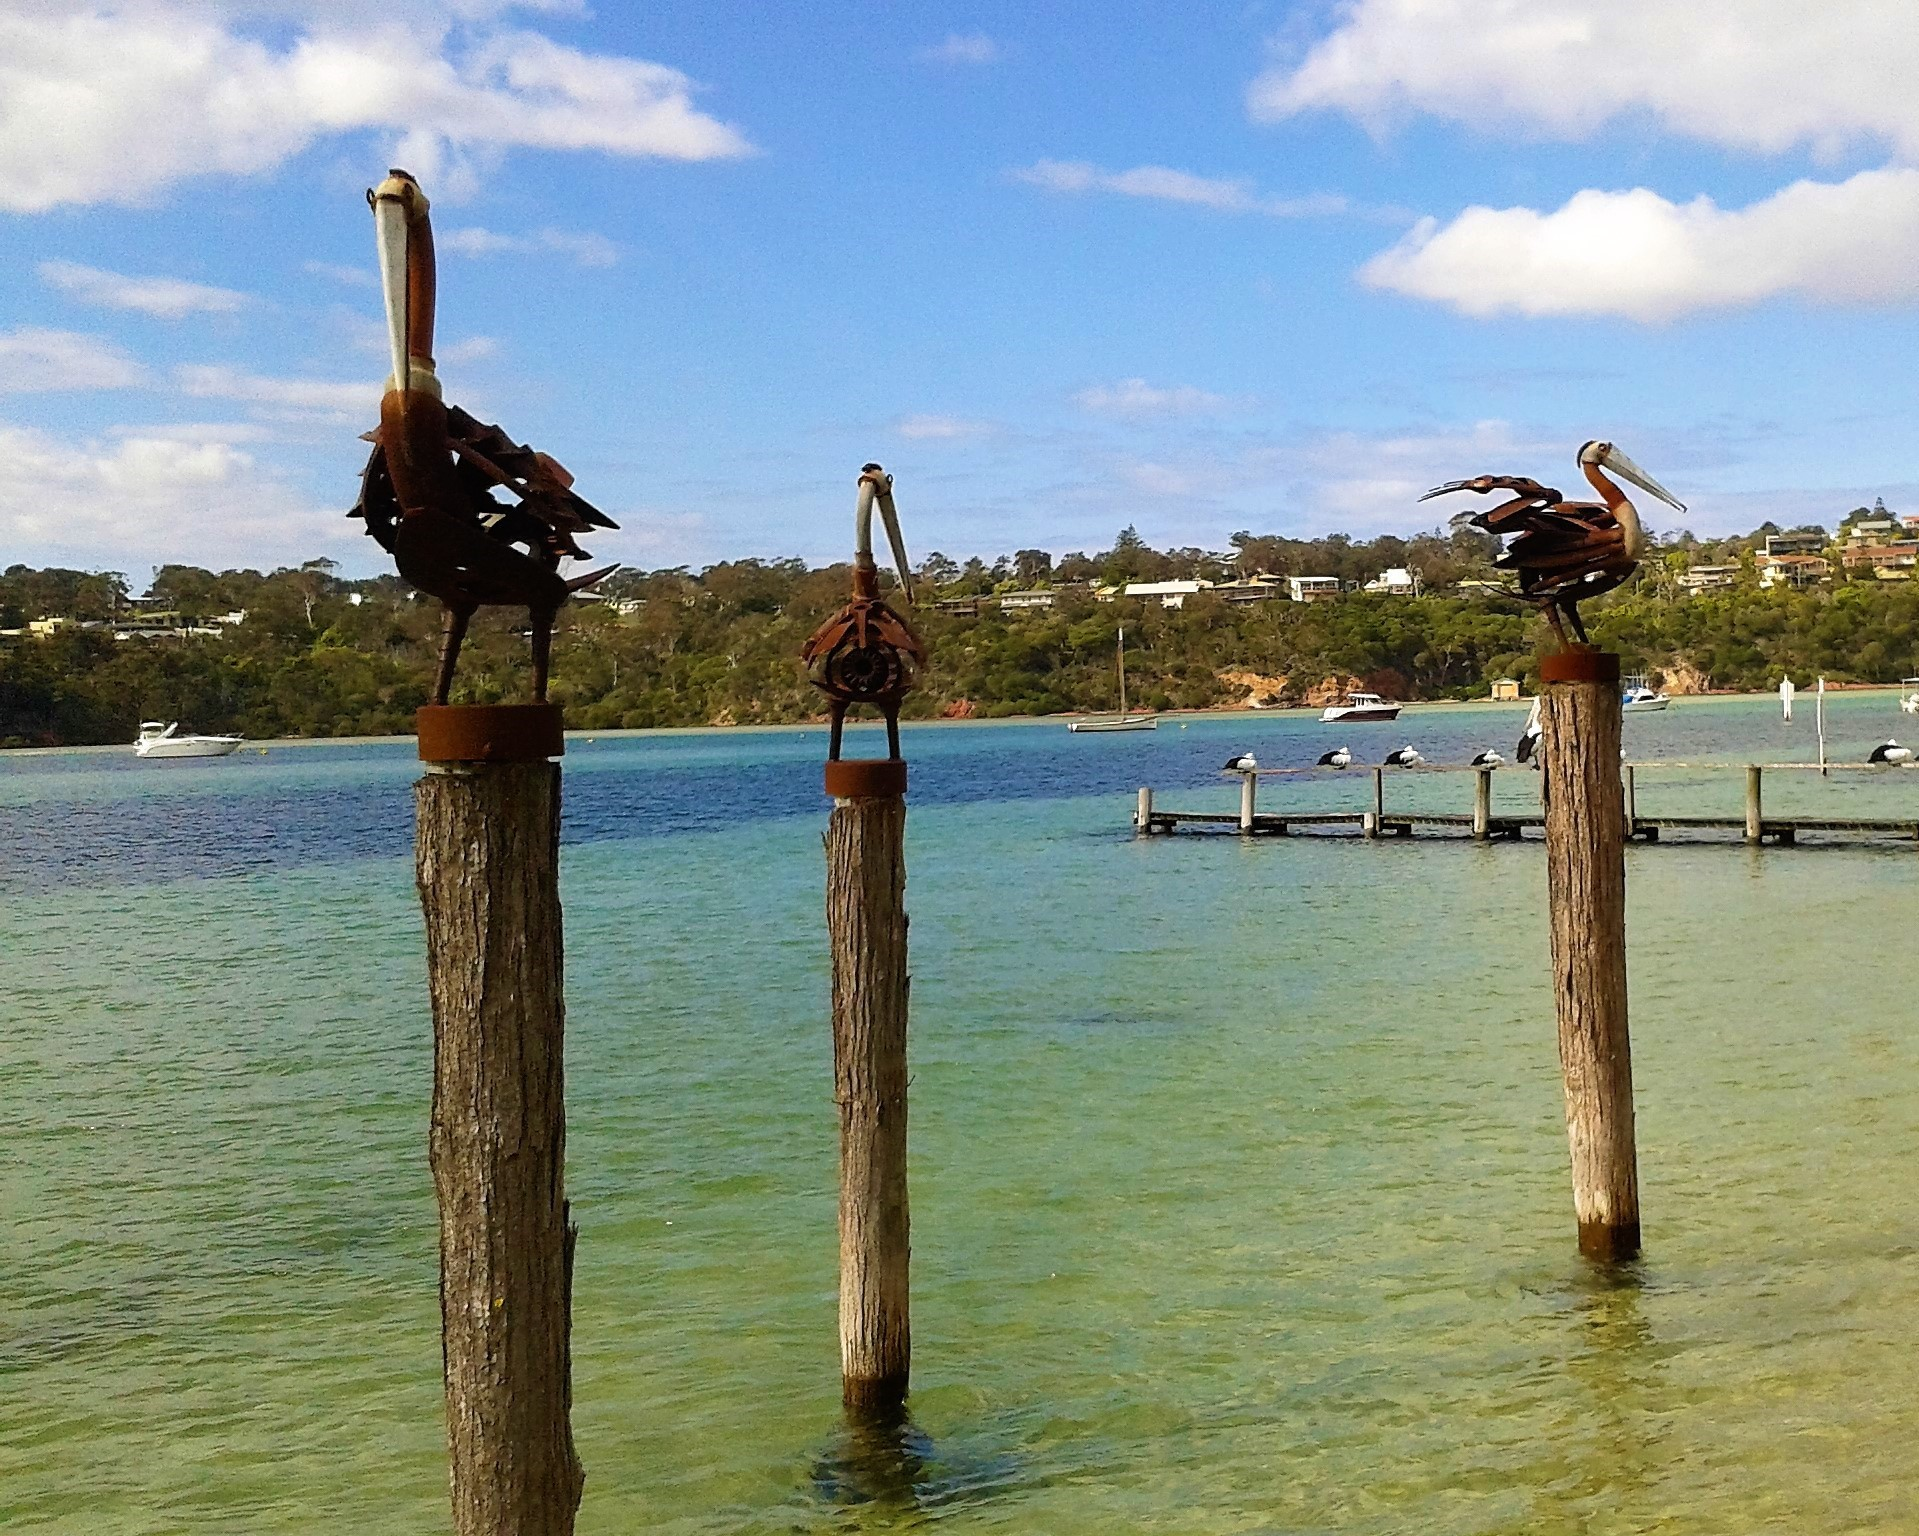 Road Trips From Canberra - Merimbula